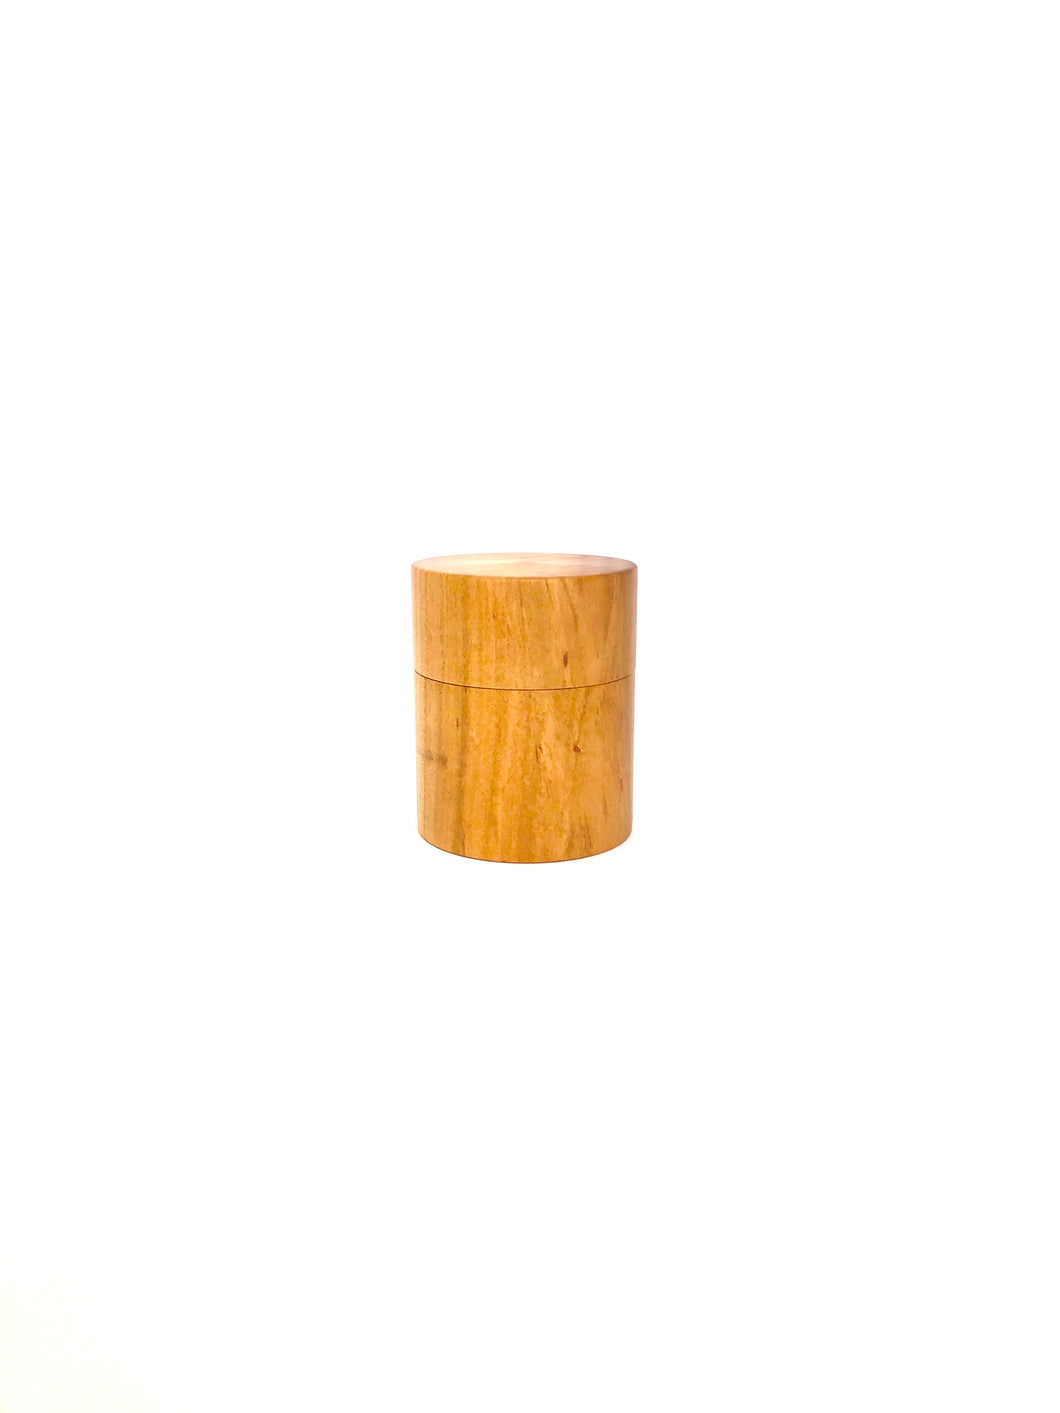 Japanese Handcrafted Wooden Mini Tea Caddy Cherry